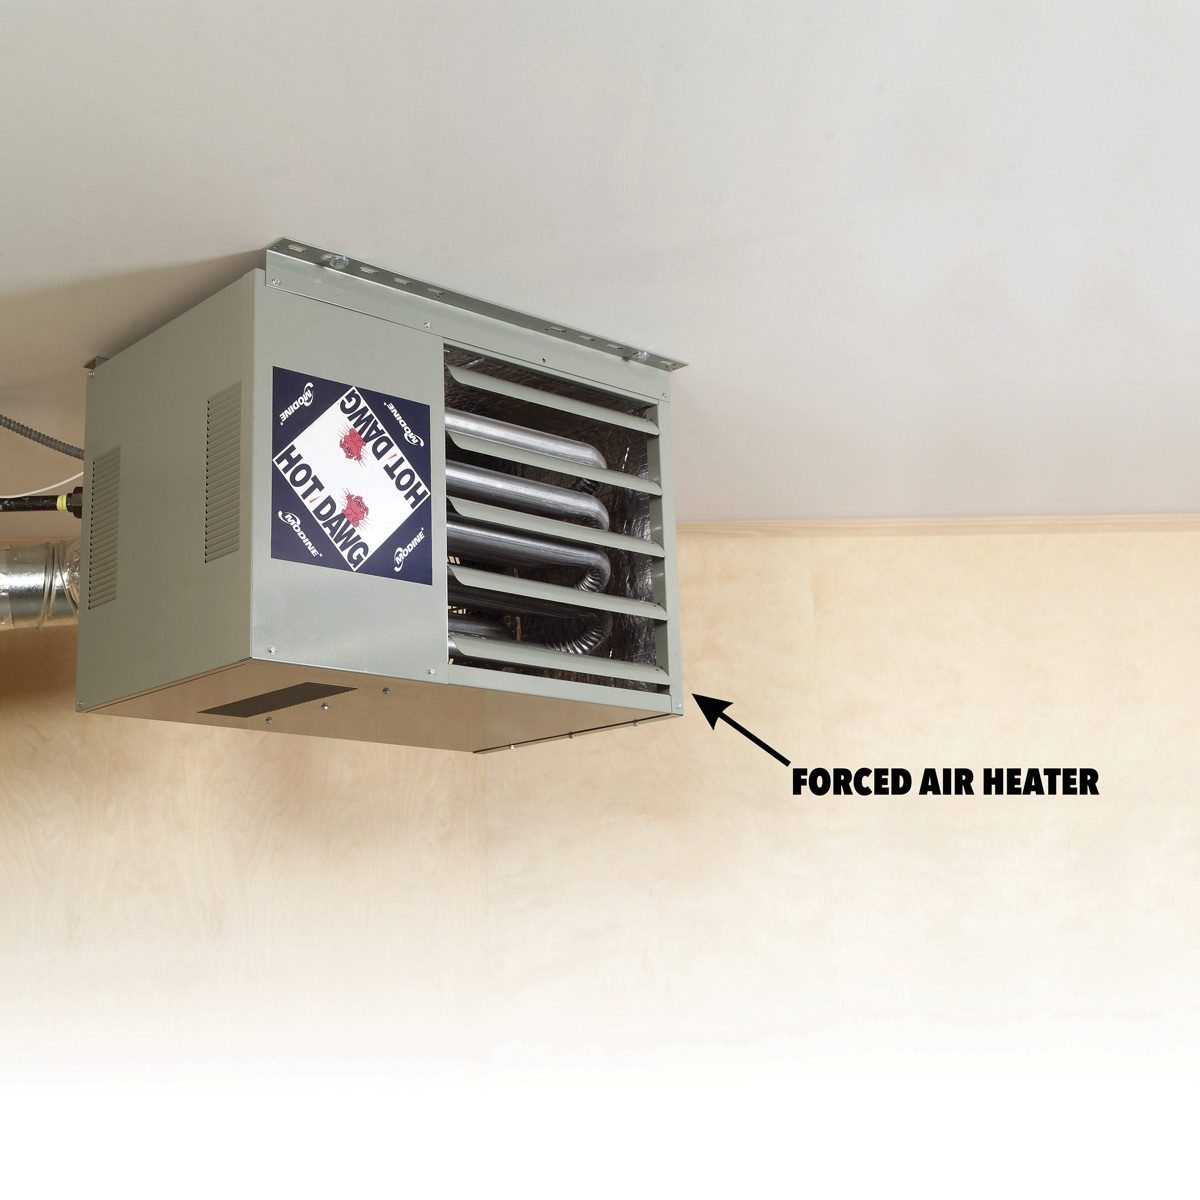 hight resolution of forced air heater